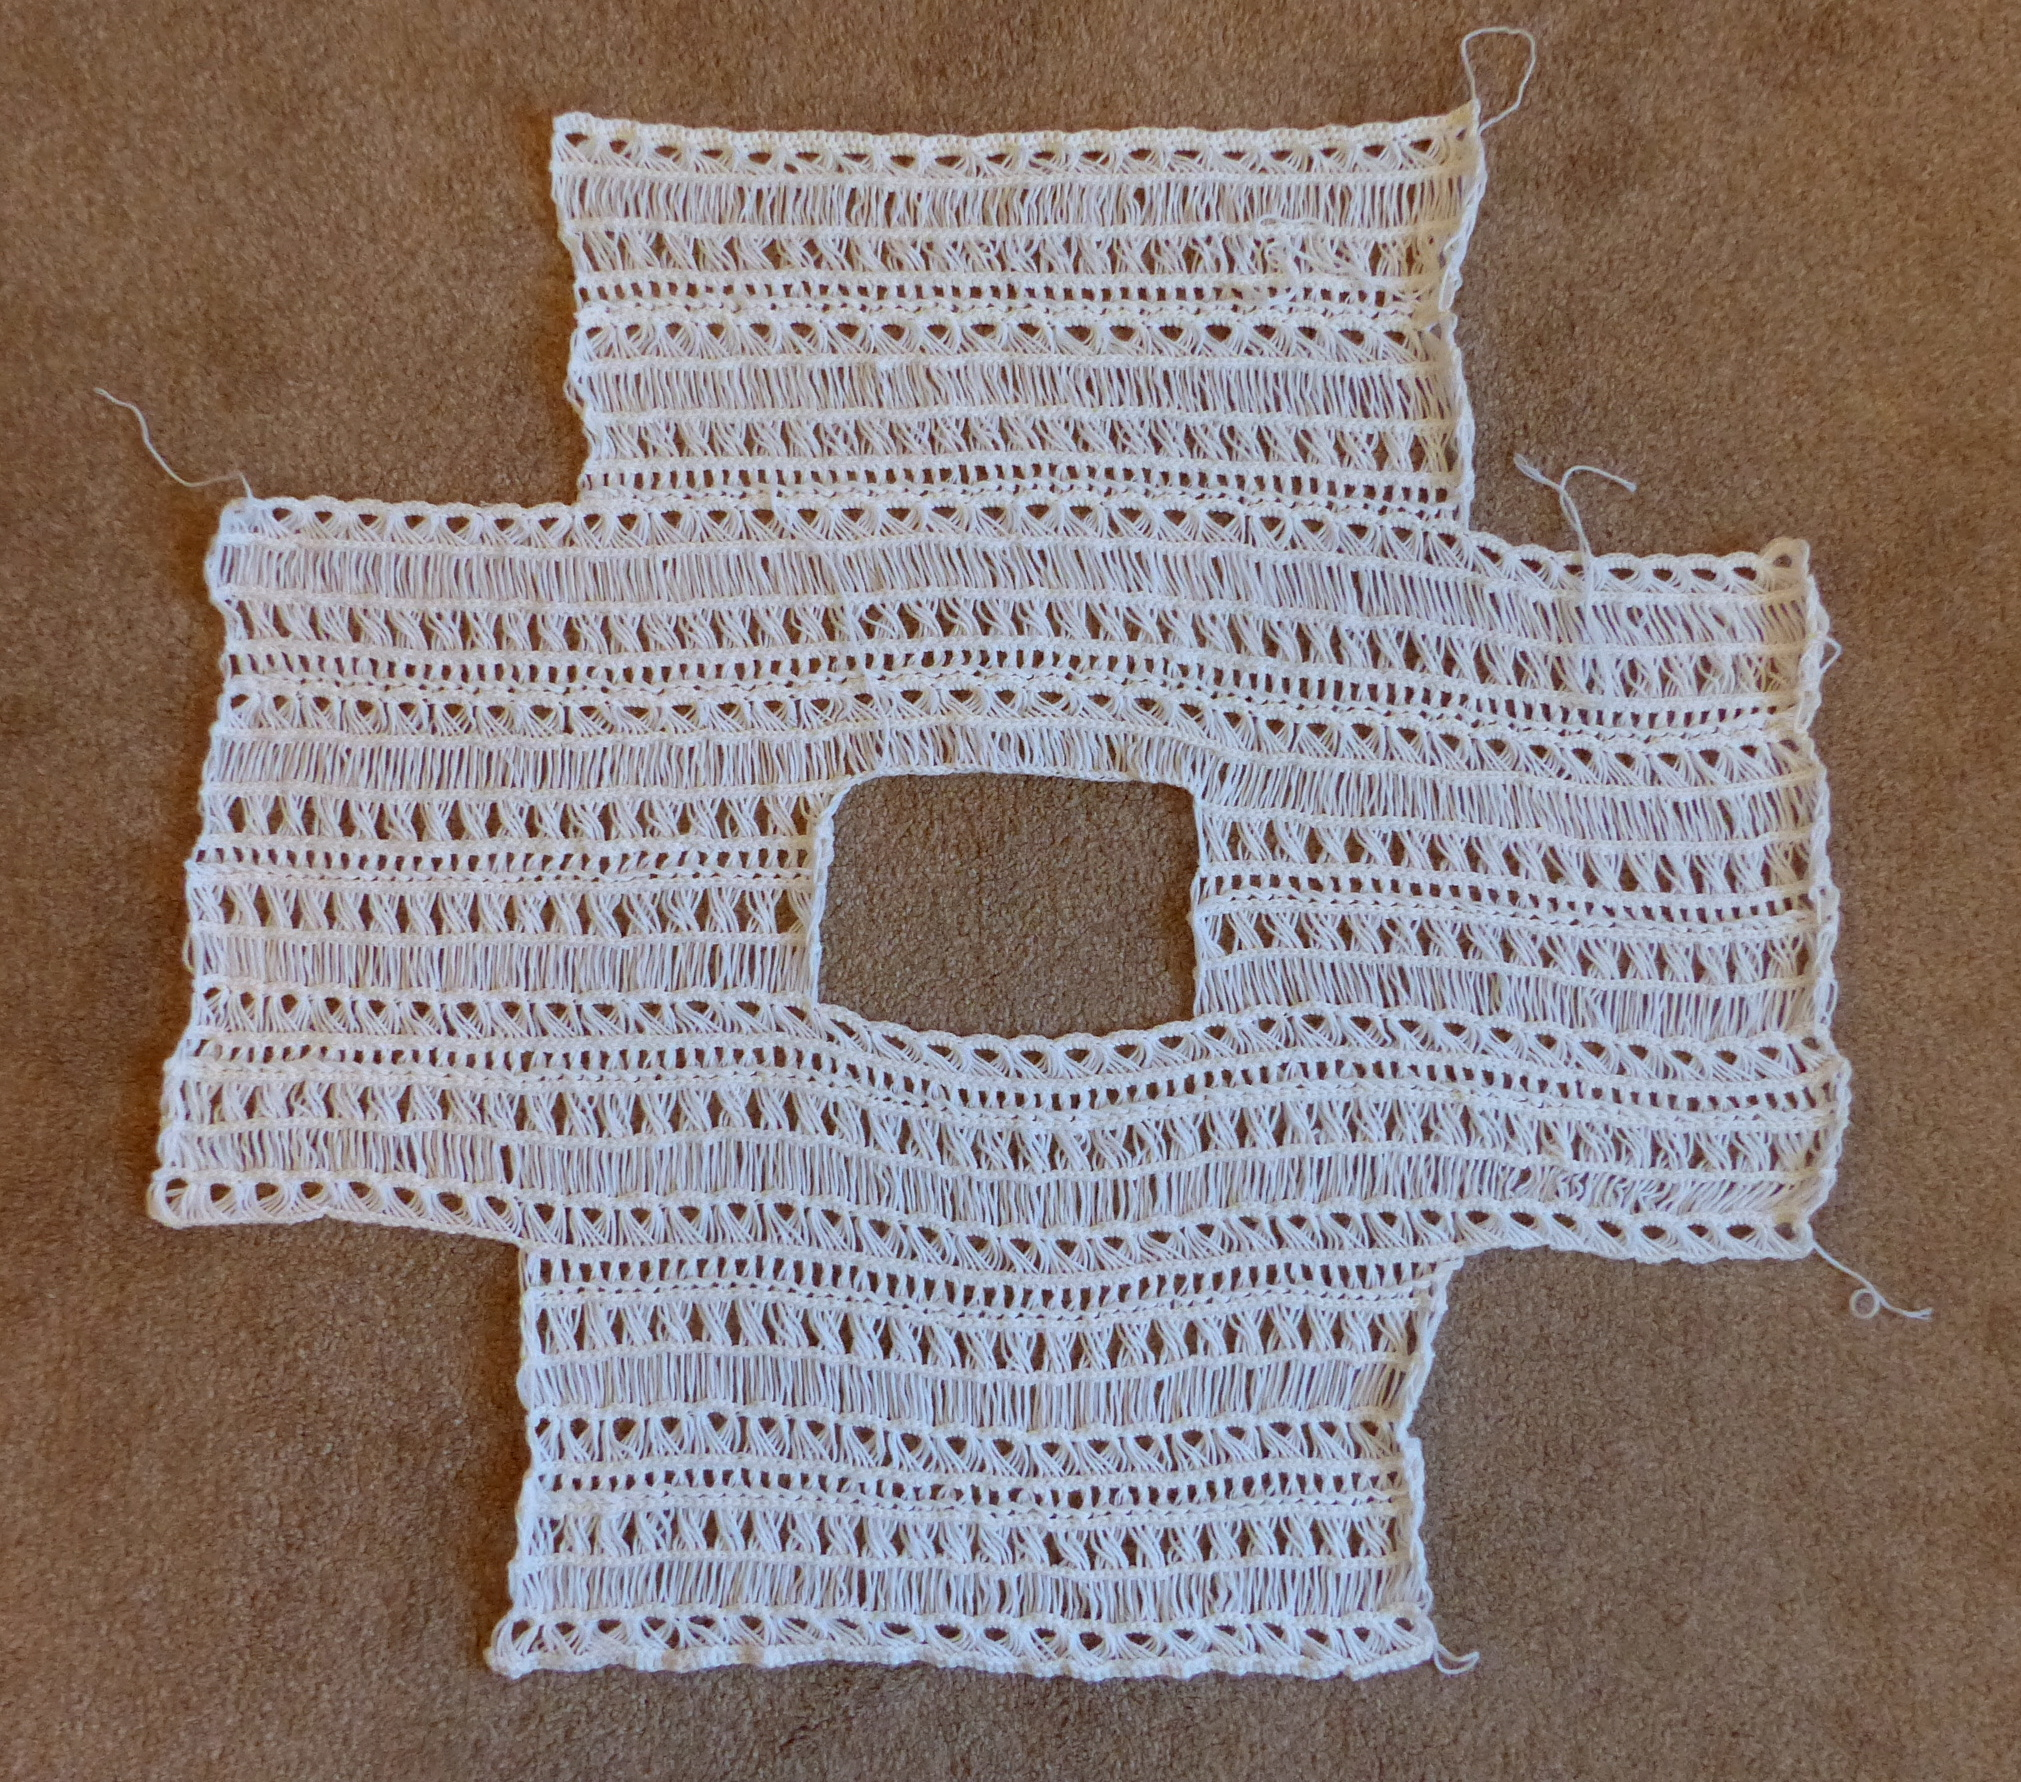 Easy Crochet Top Patterns For Beginners : Indian Summer Lace Top Make My Day Creative